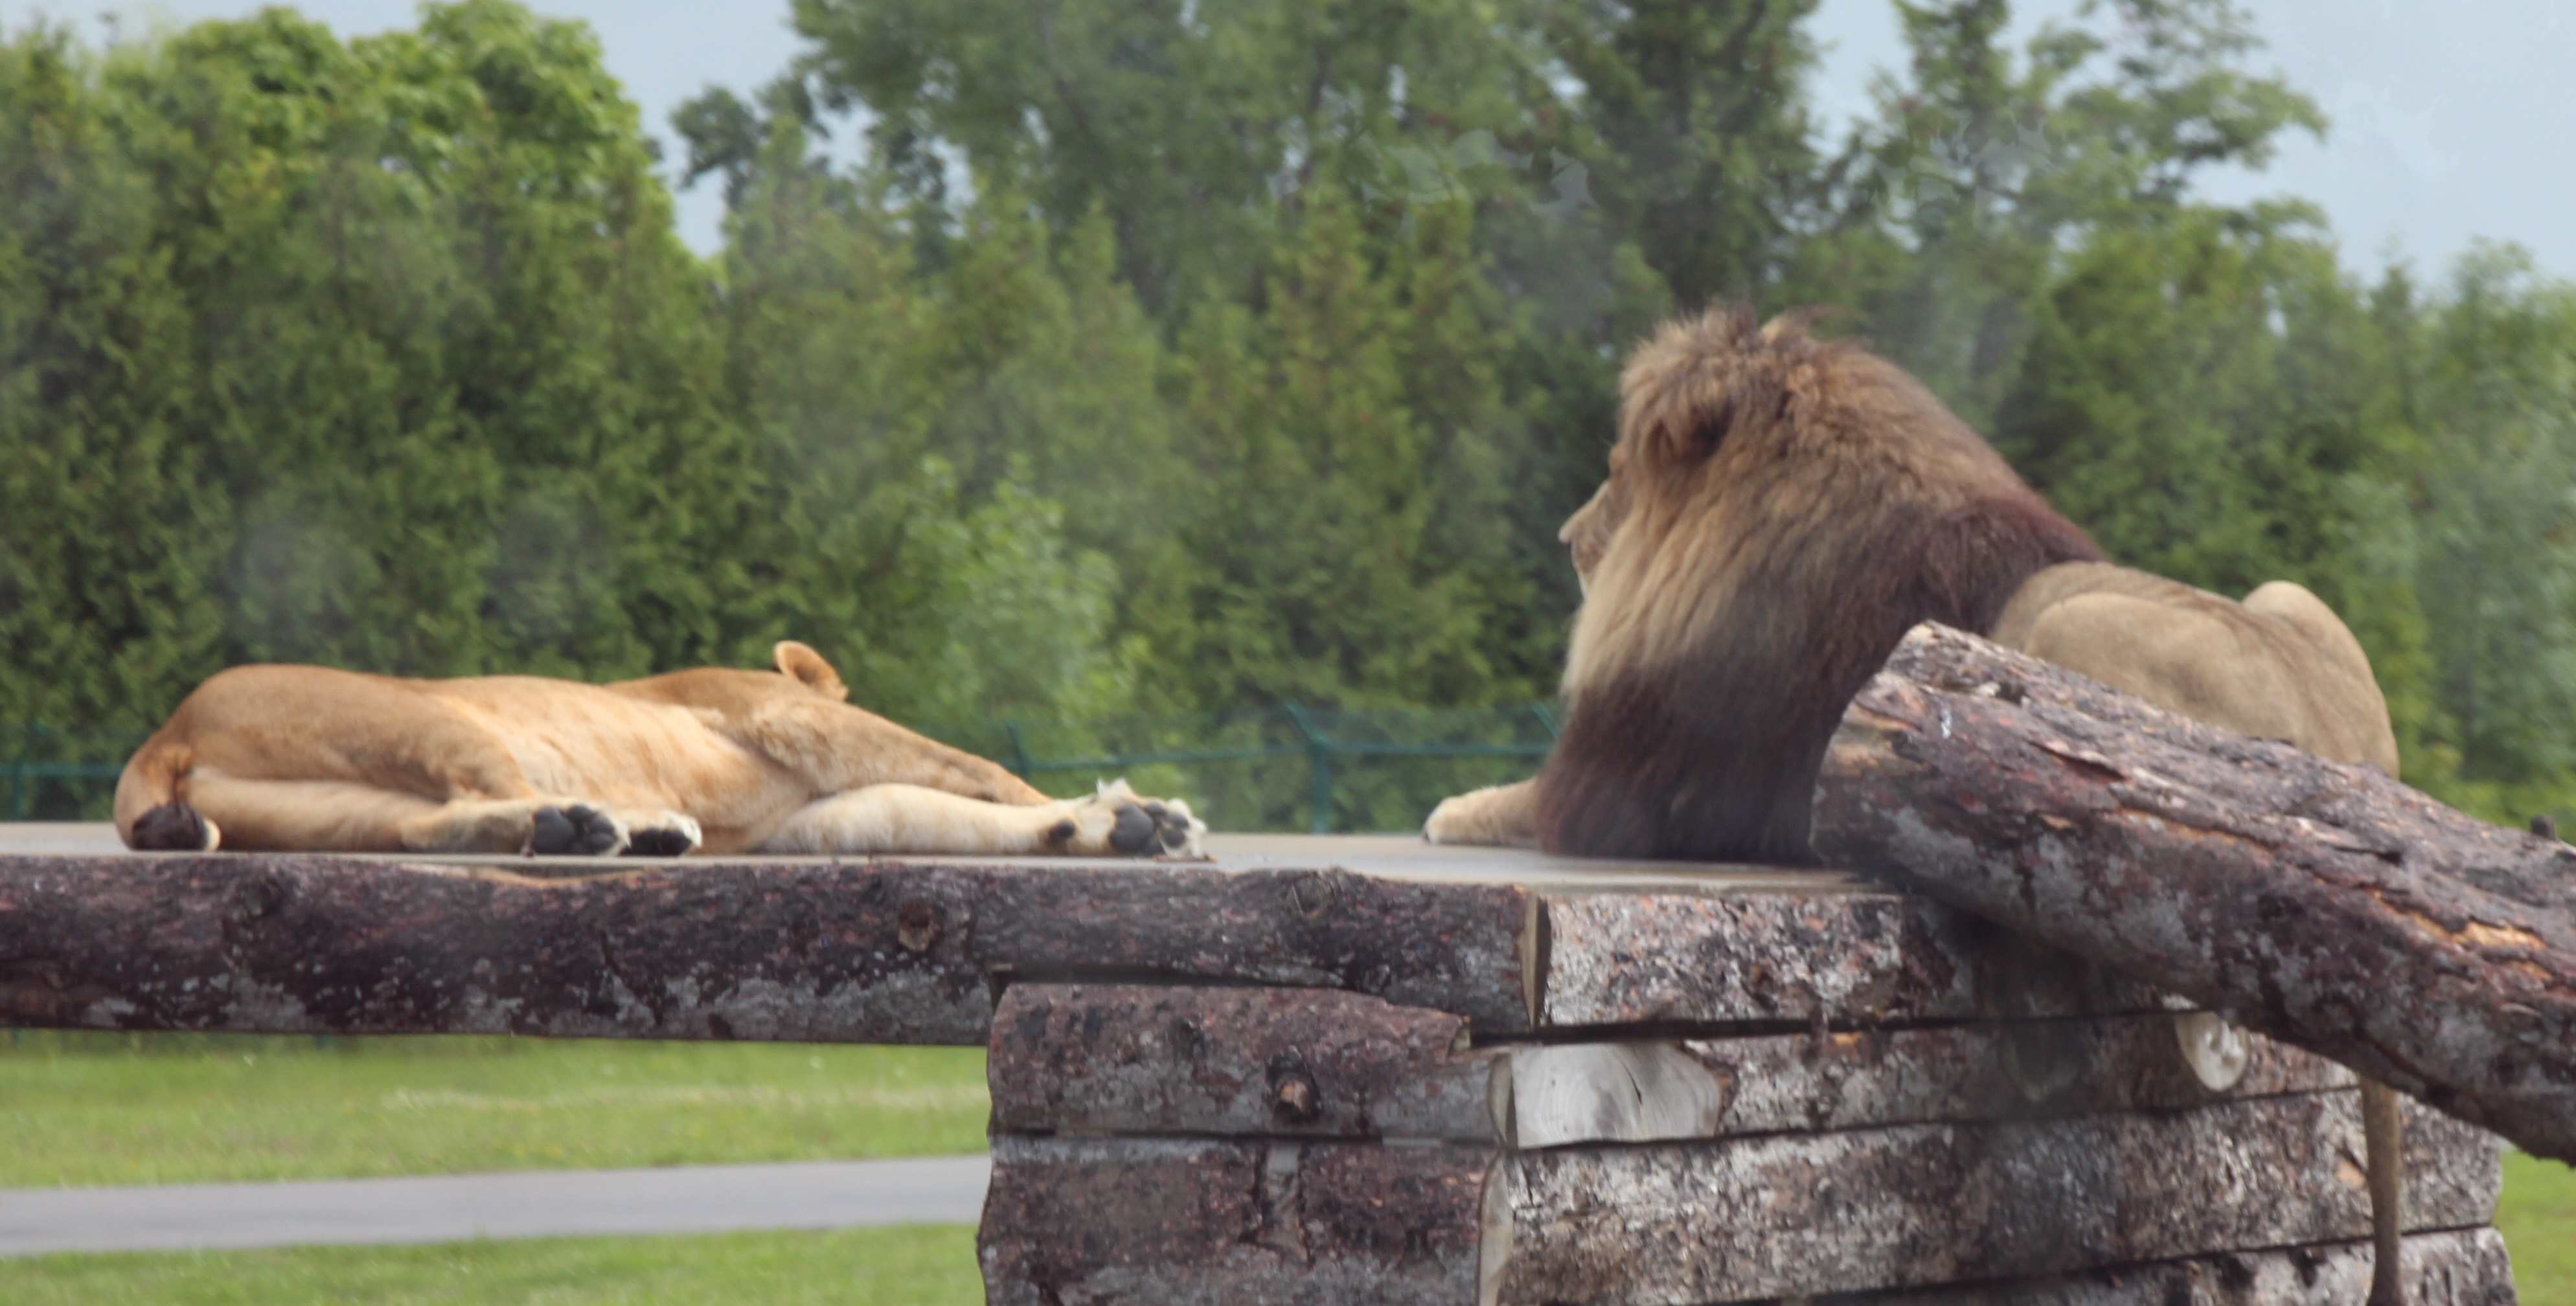 Bored Lions